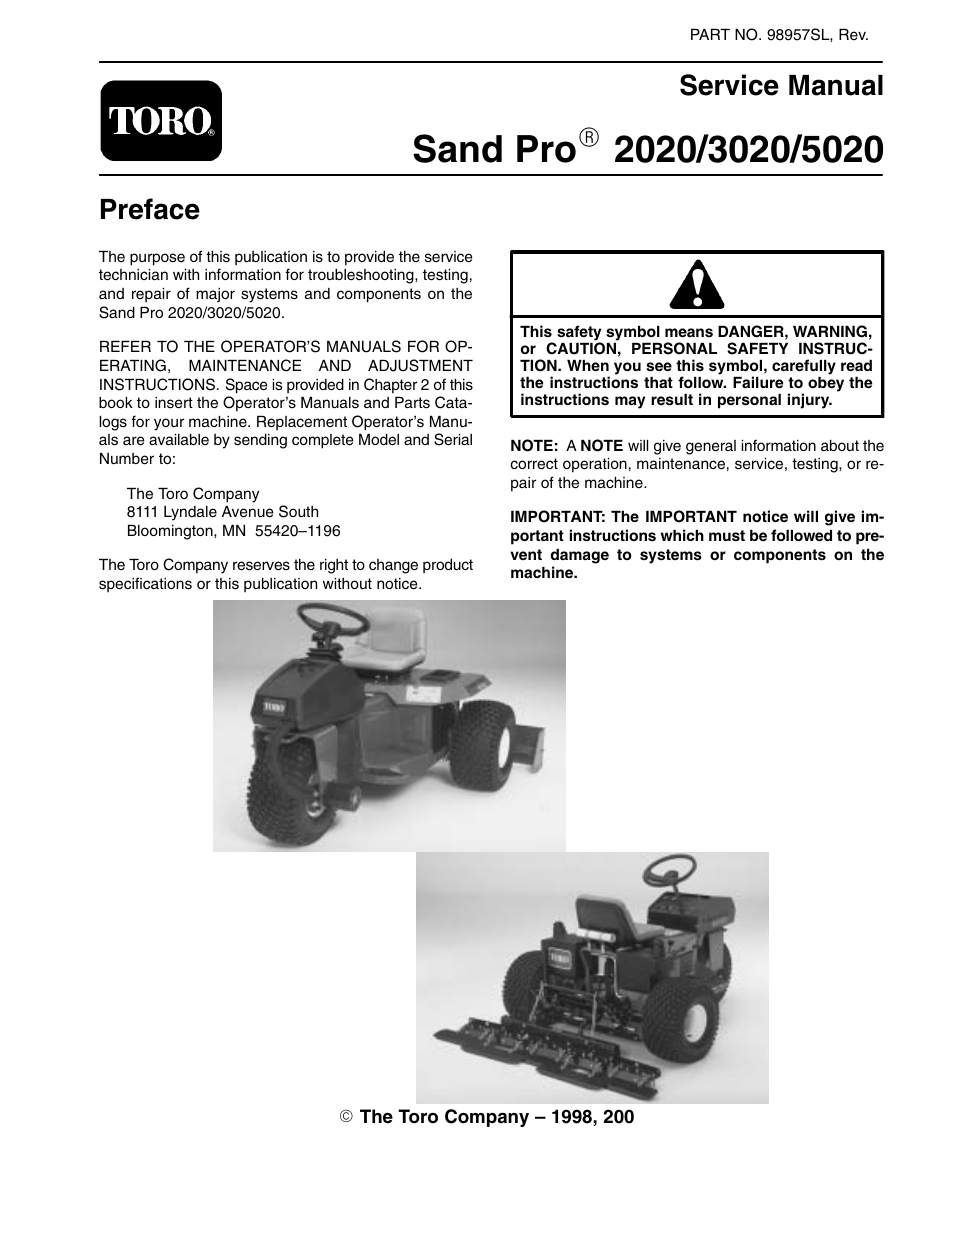 toro sand pro 5020 user manual 170 pages also for sand pro 3020 rh manualsdir com toro owners manual for lawn mowers toro owners manual